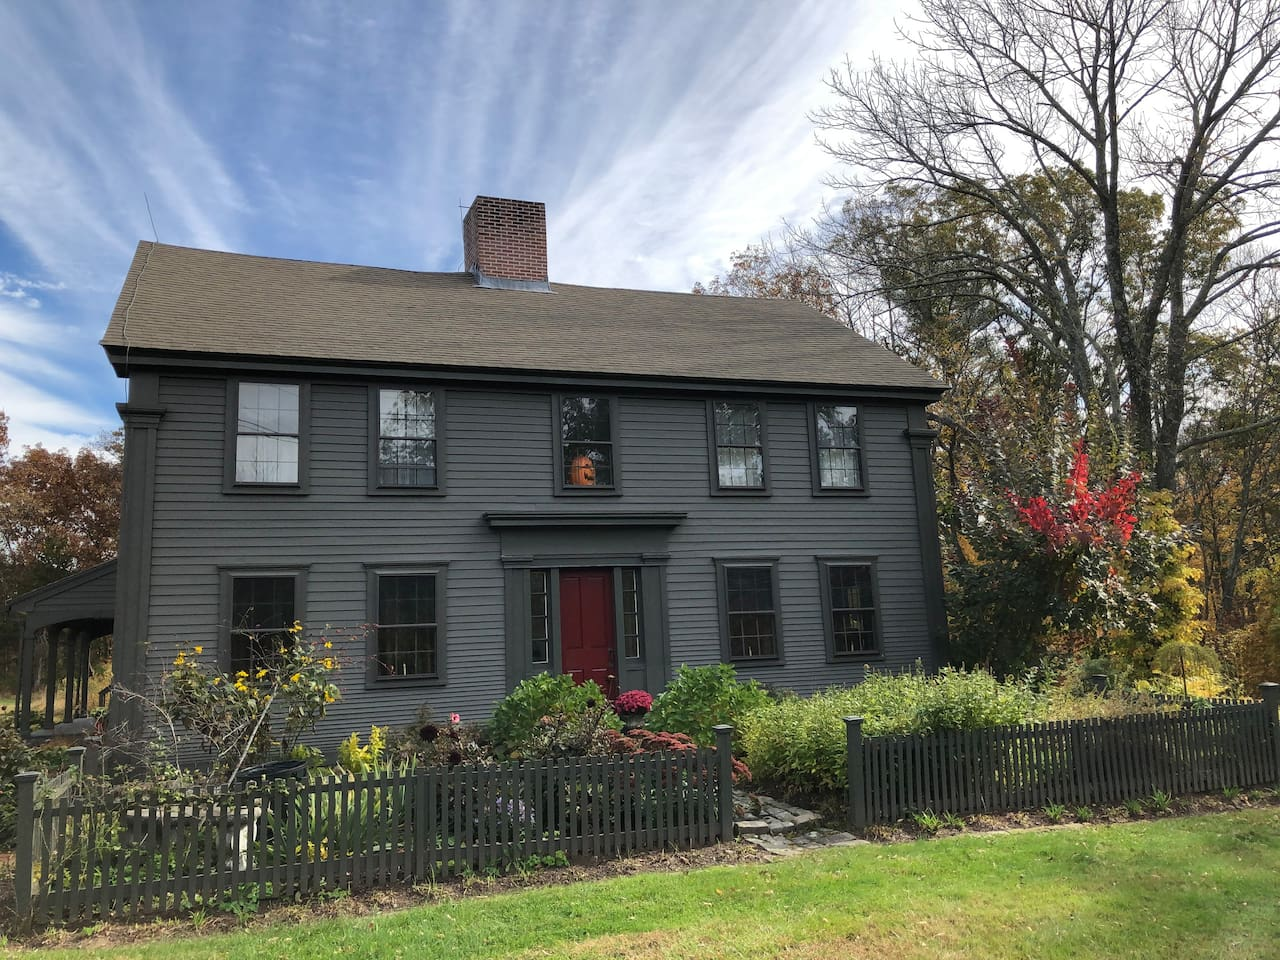 Halfway between Providence and Worcester, Emerson Brook is perfect place to stay when working in either city